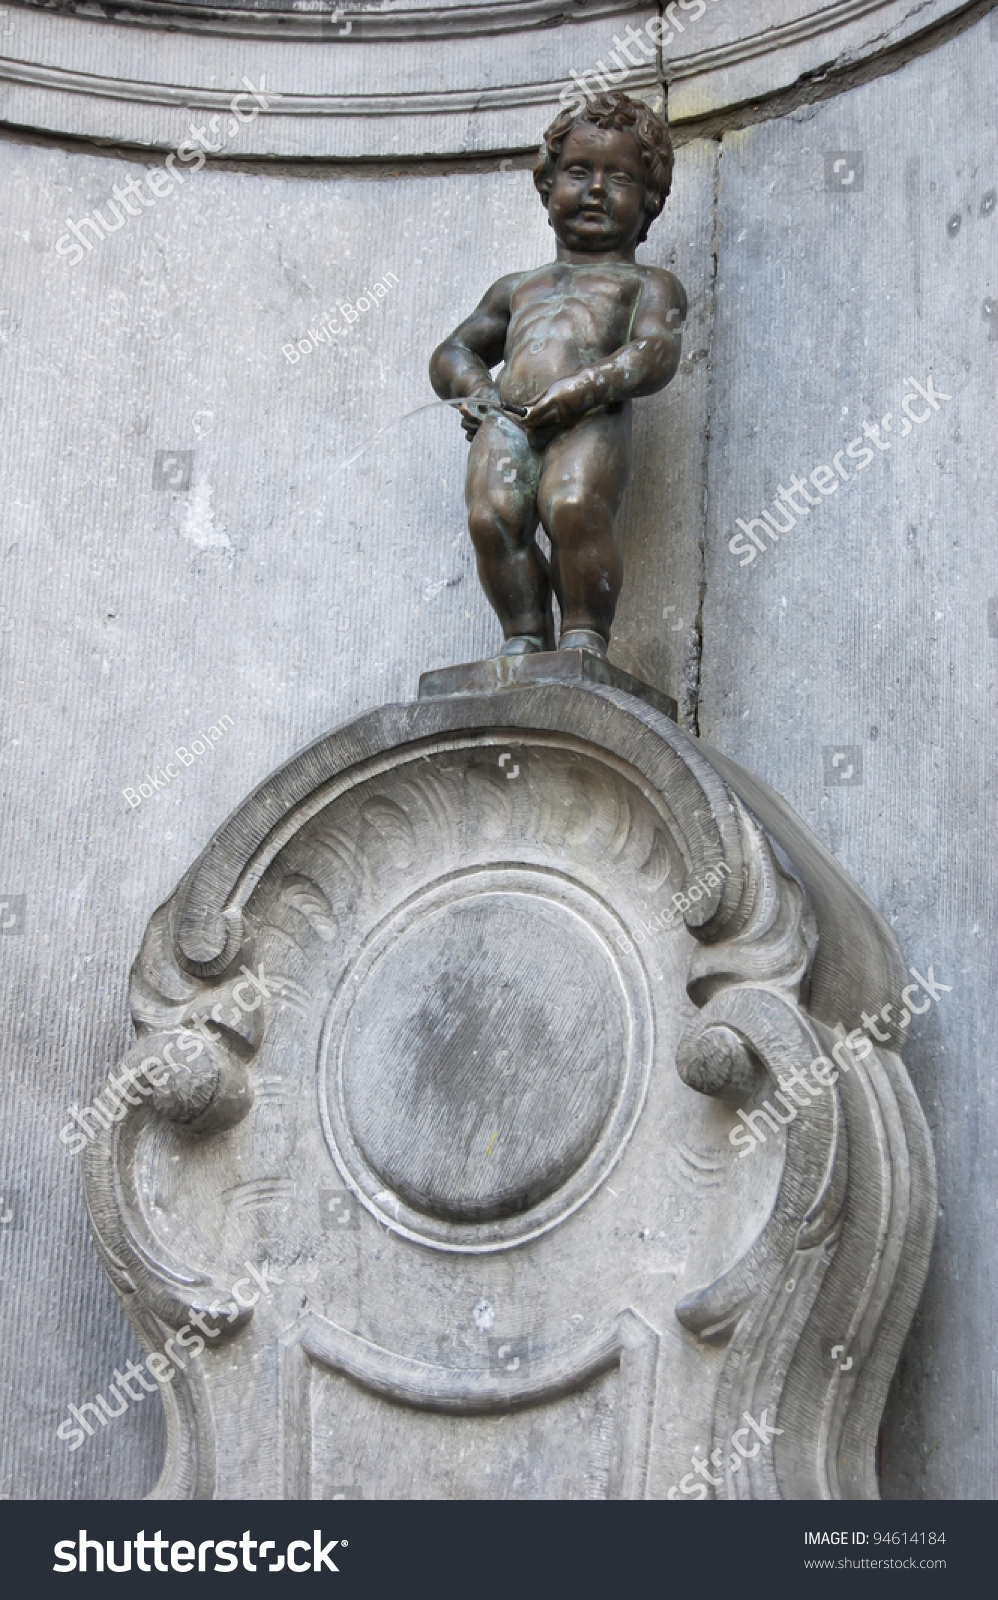 Brussels statue famous peeing in